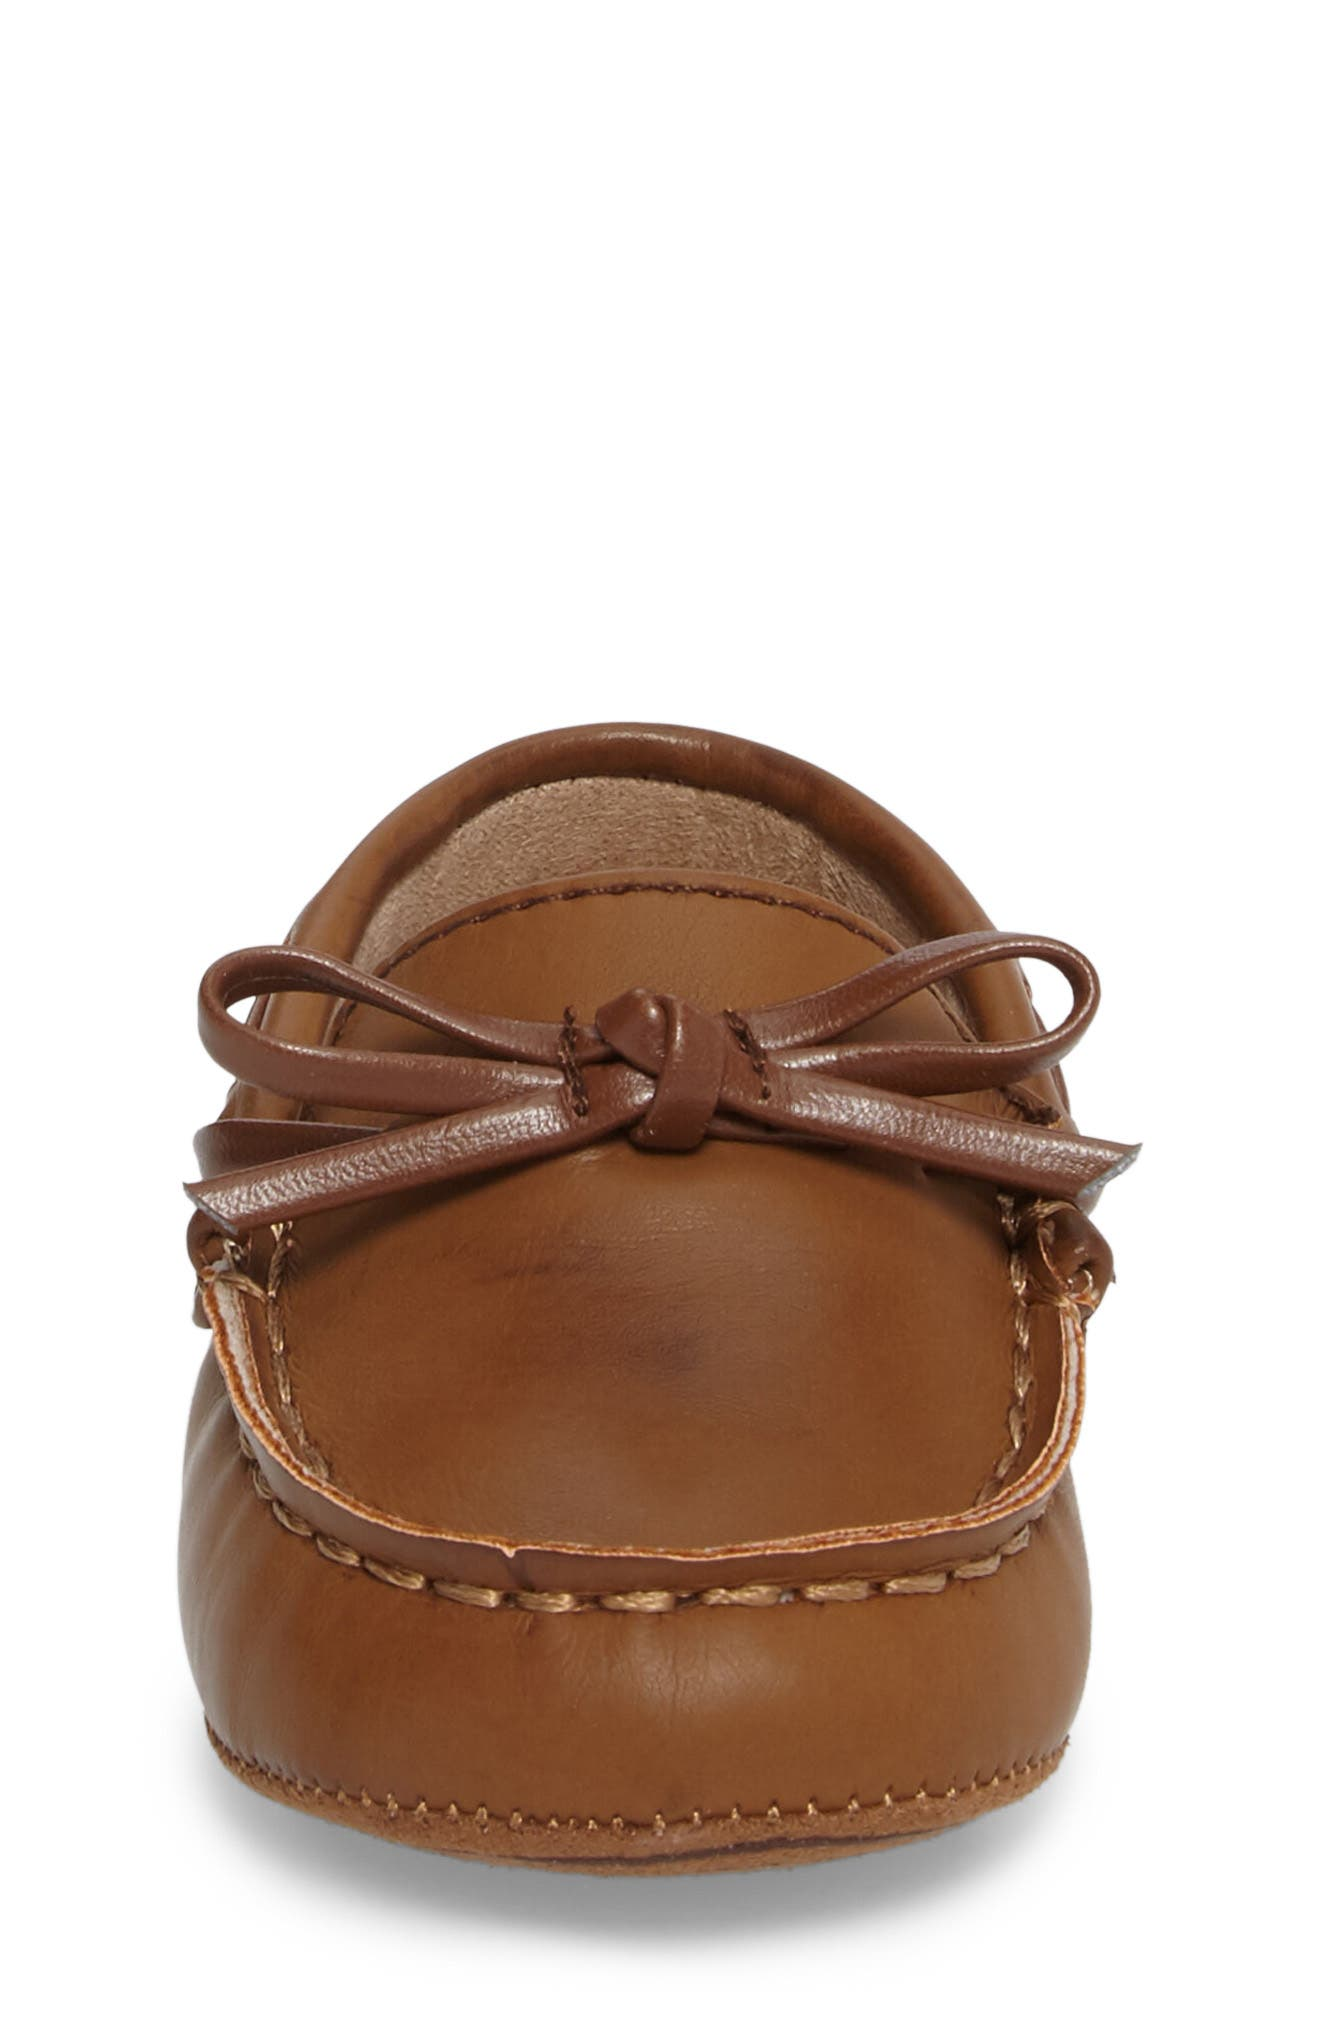 KENNETH COLE NEW YORK,                             Baby Boat Shoe,                             Alternate thumbnail 4, color,                             CARAMEL